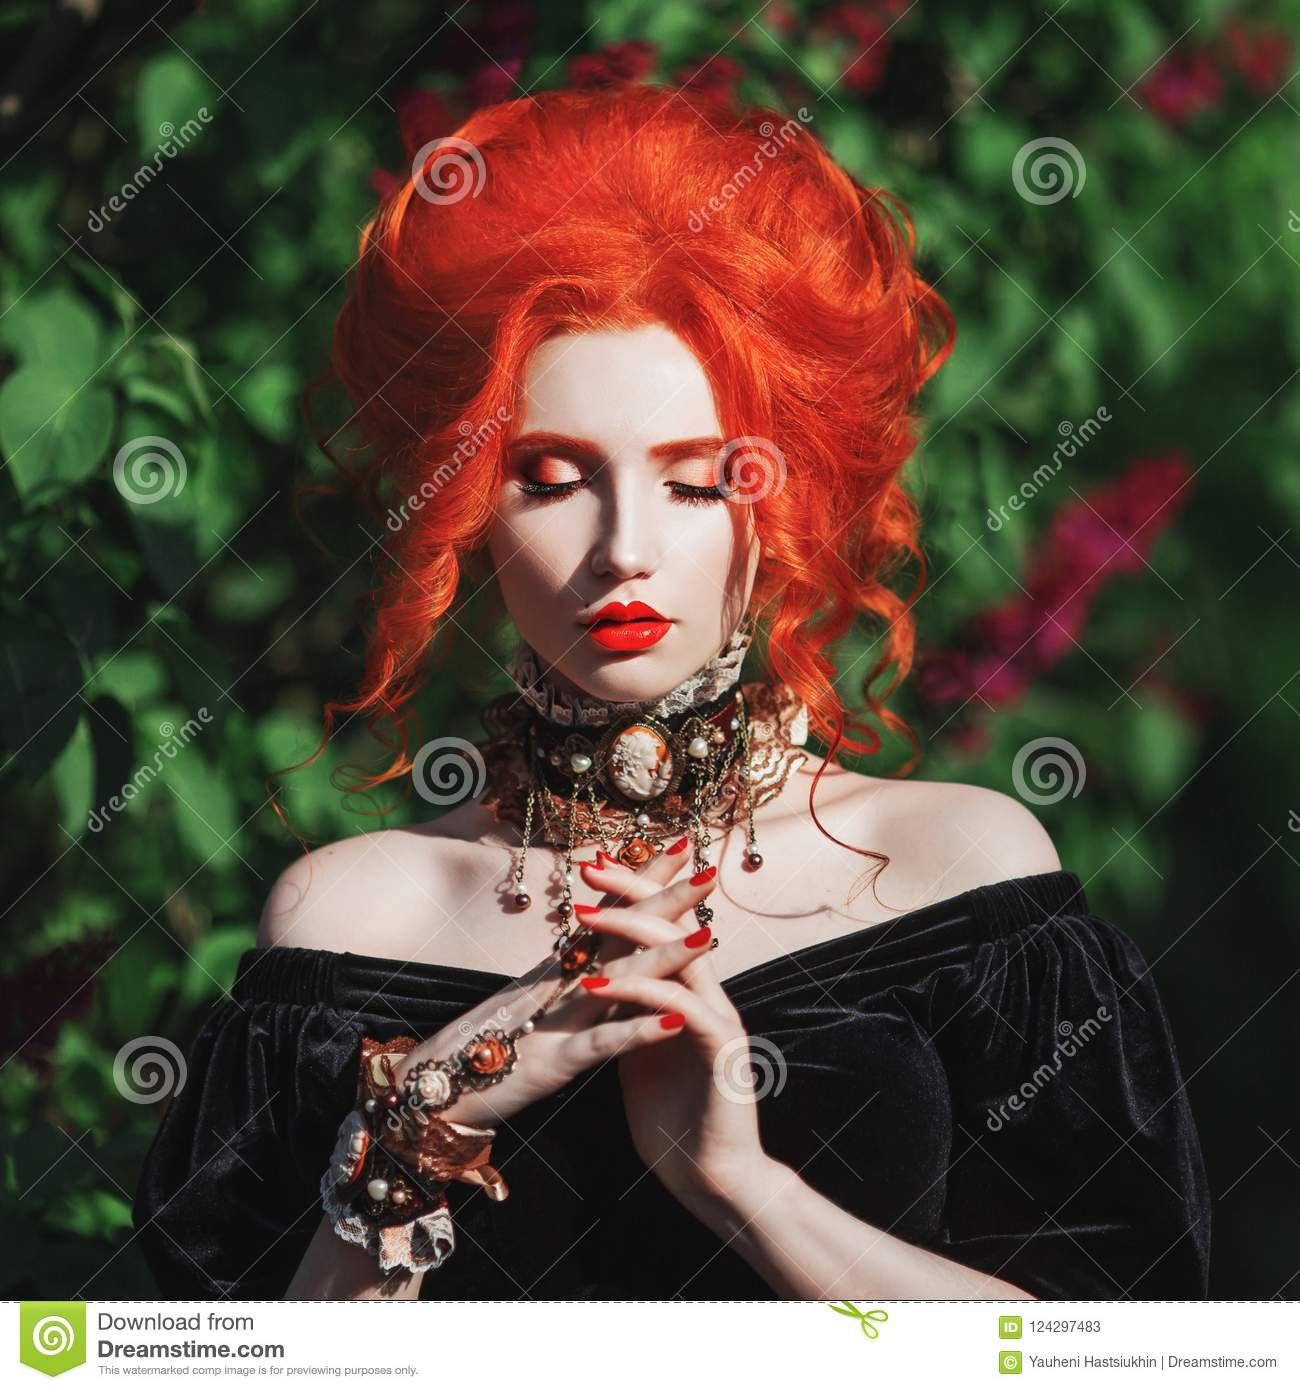 Dark halloween attire. Gothic woman witch with pale skin and red hair in black gown and baroque necklace on neck.